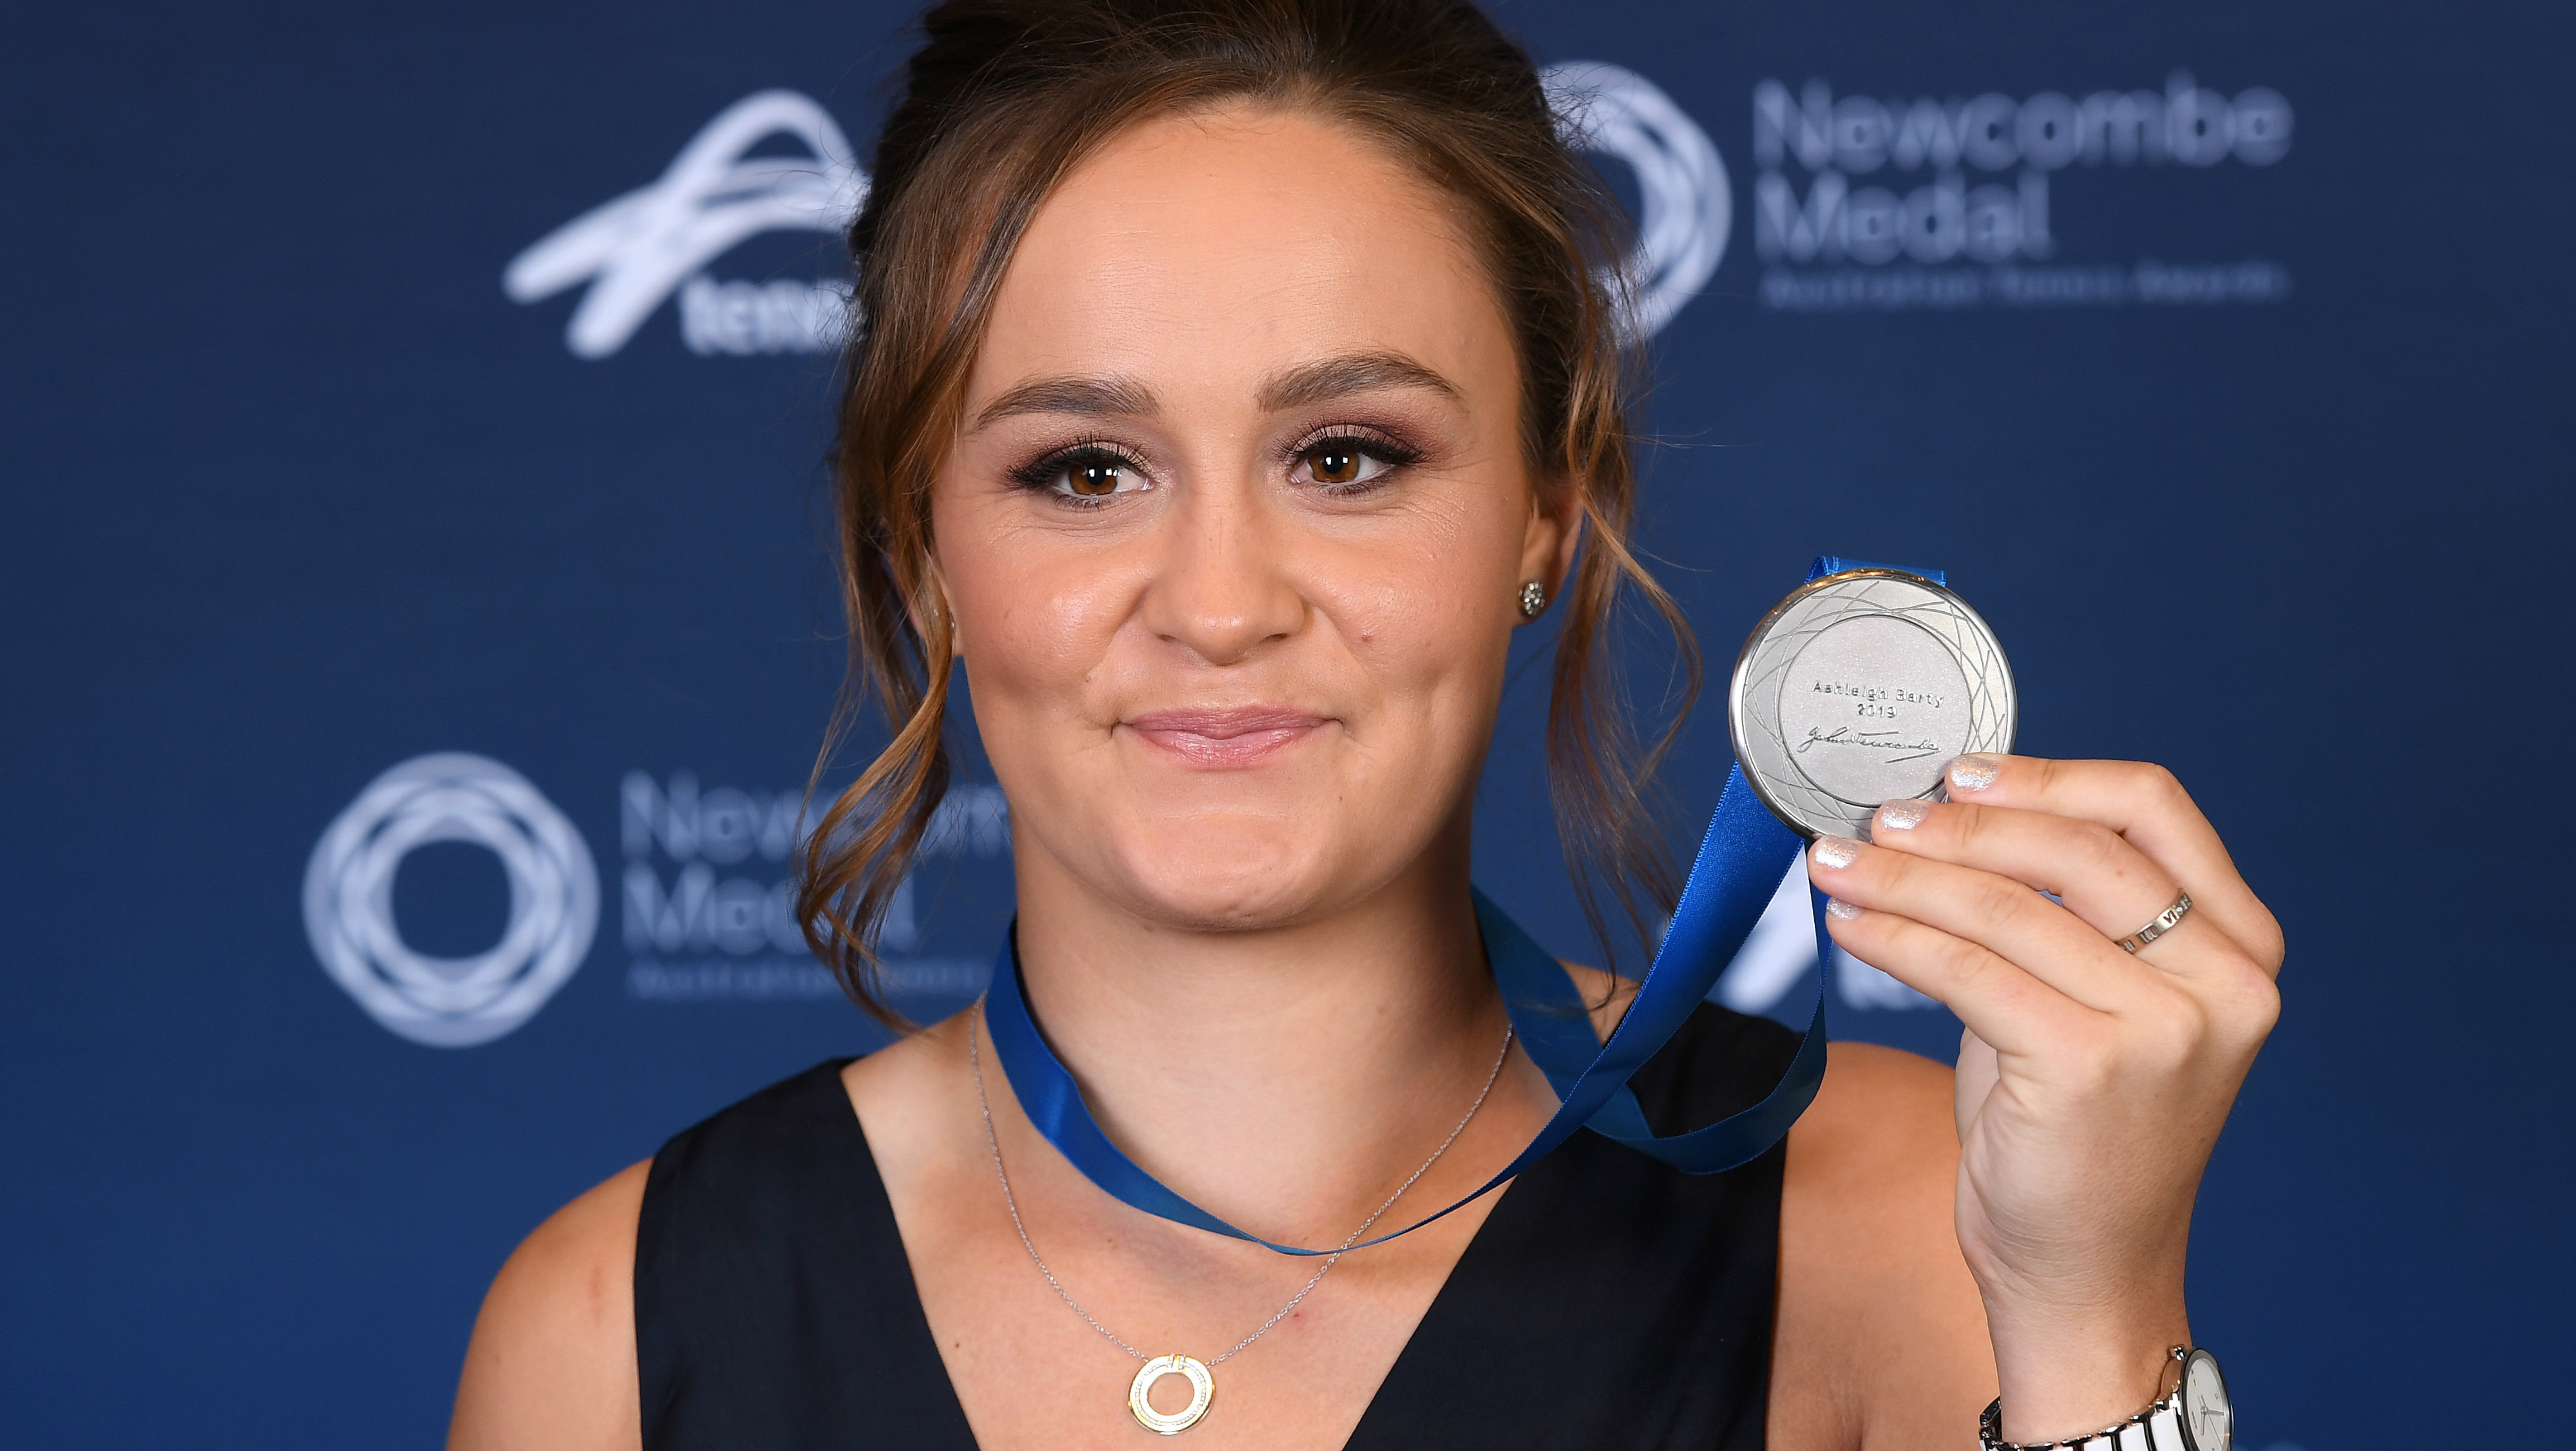 Ashleigh-Barty-Newcombe-Medal-2019